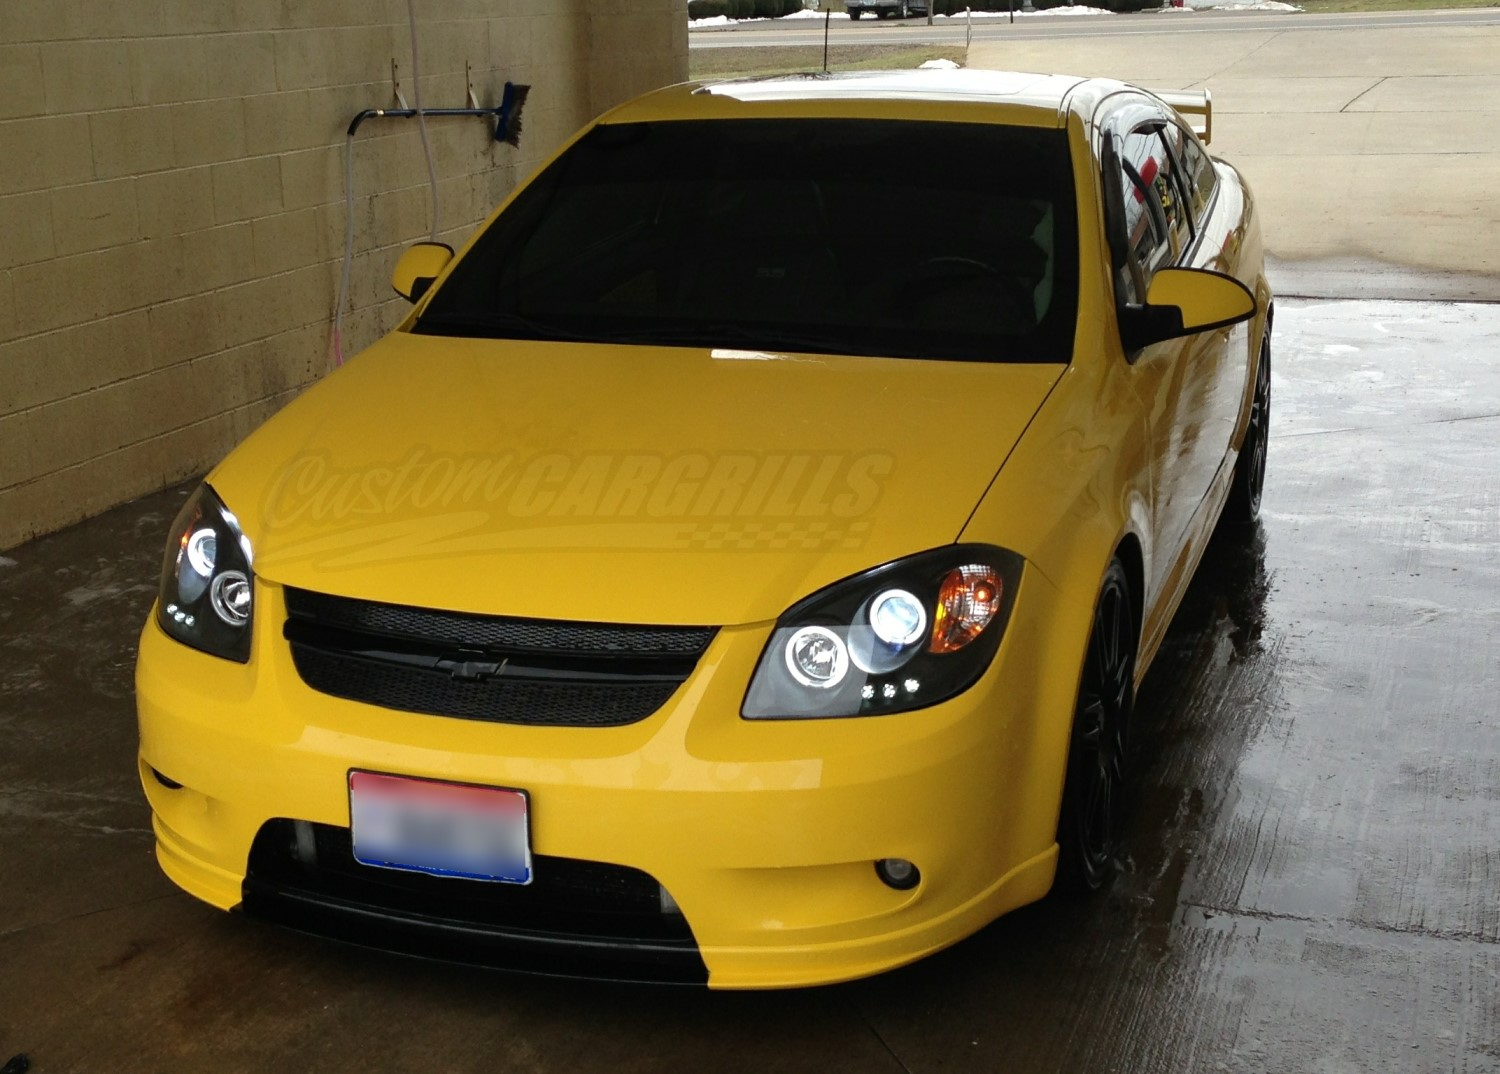 All Chevy 2005 chevy colbalt : 2005-10 Chevrolet Cobalt Mesh Grill Kit by customcargrills